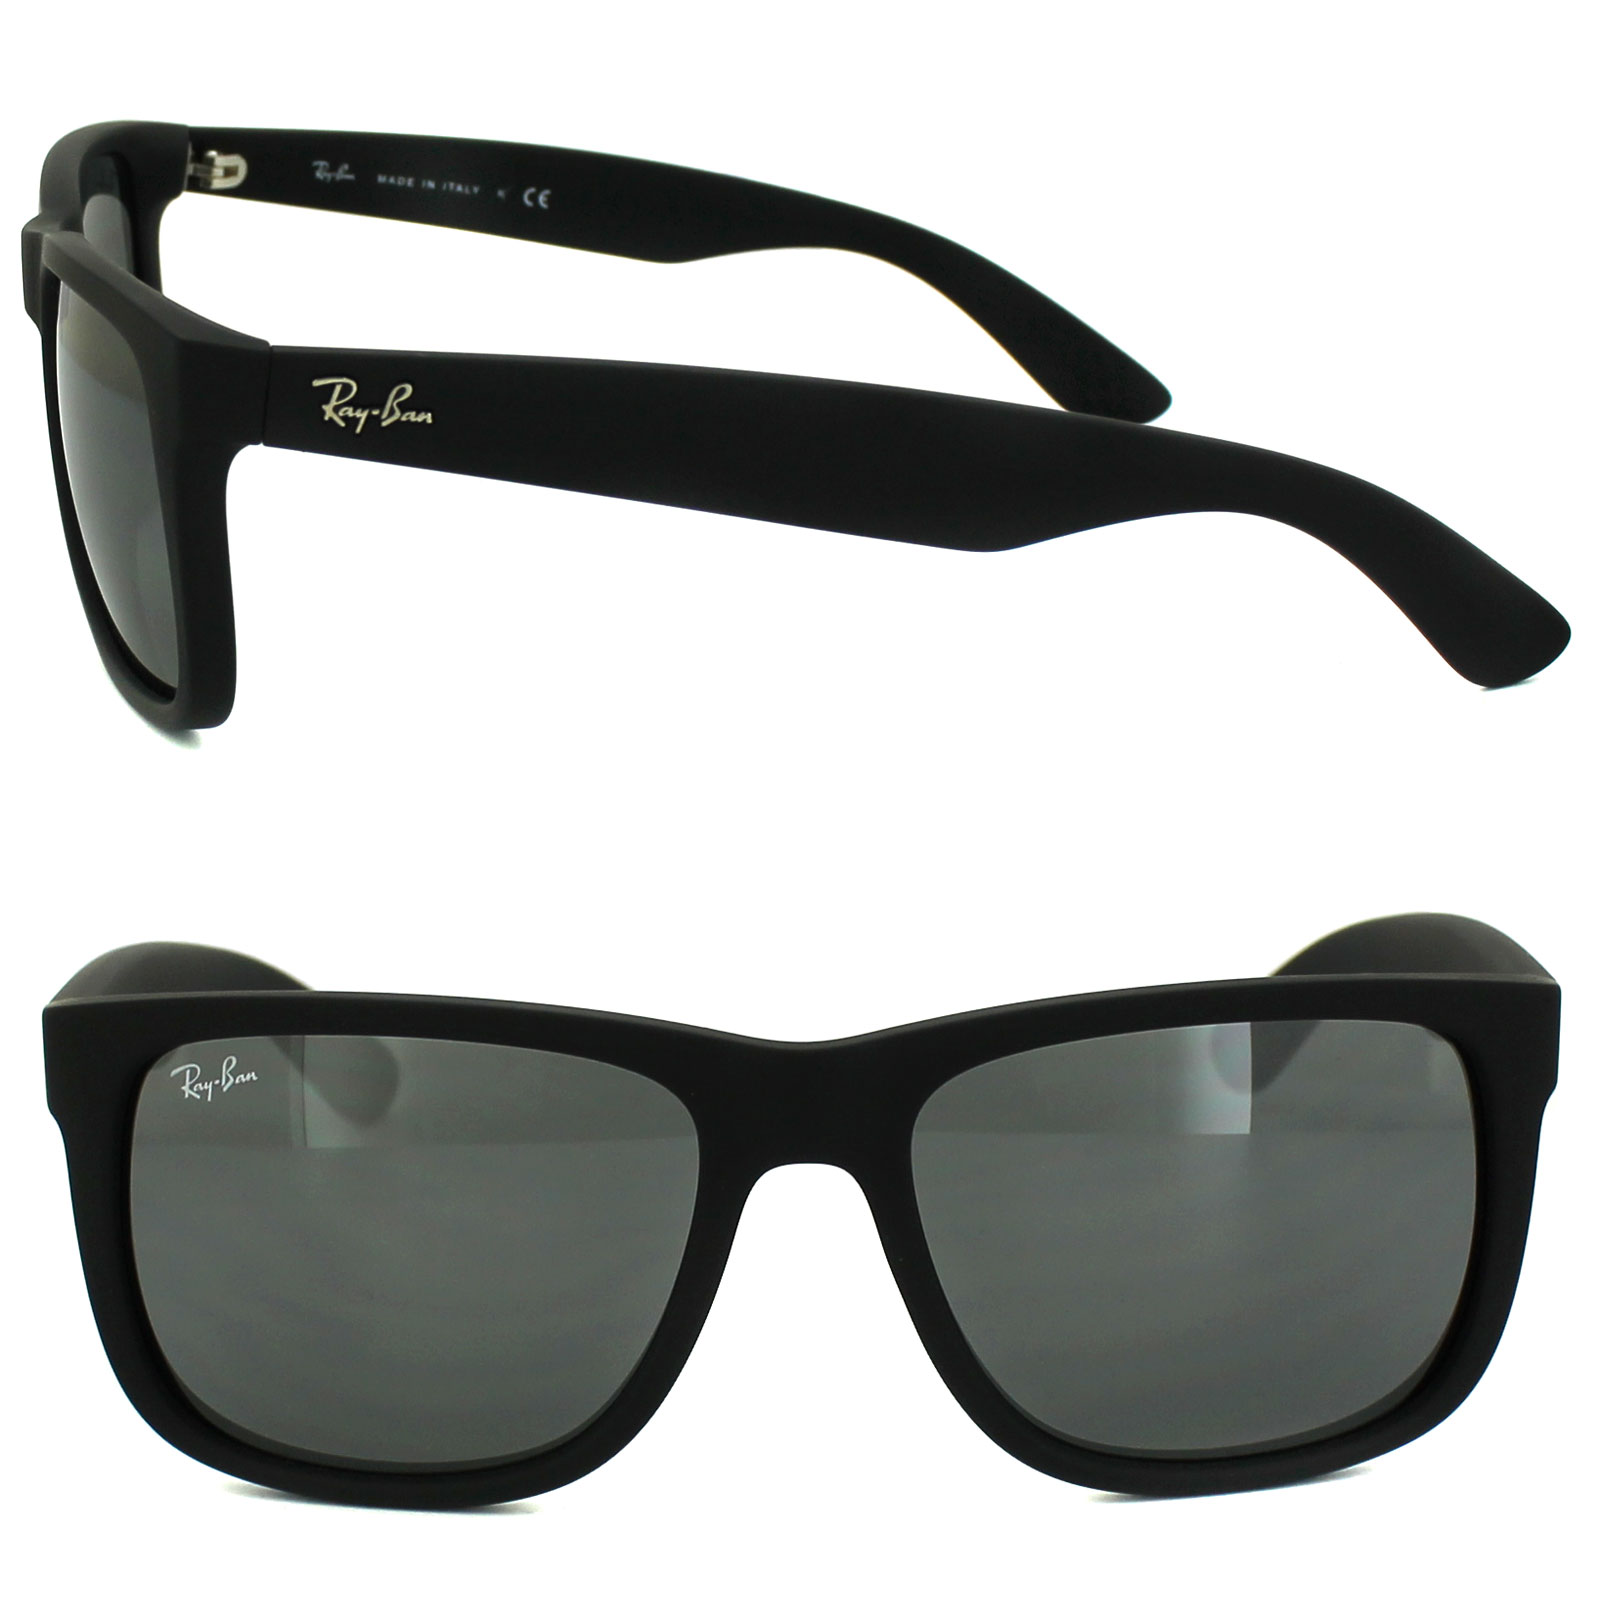 2c1a9c3af7 Ray Ban Justin 4165 622 6g